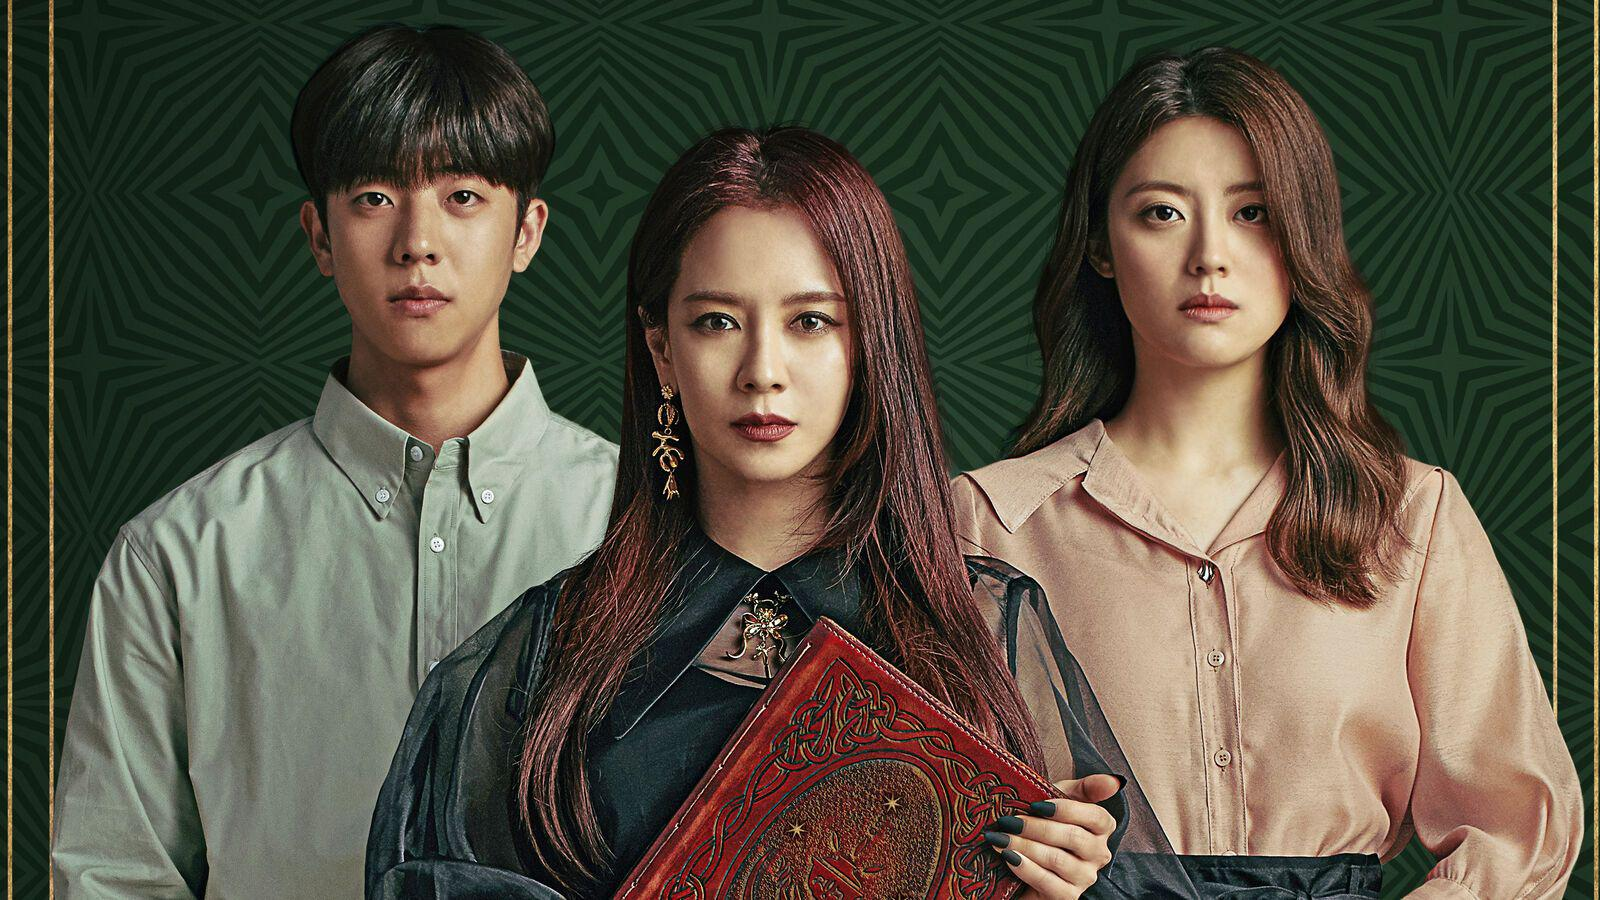 The Witch's Diner Episode 5 Release Date, Recap, And Spoilers